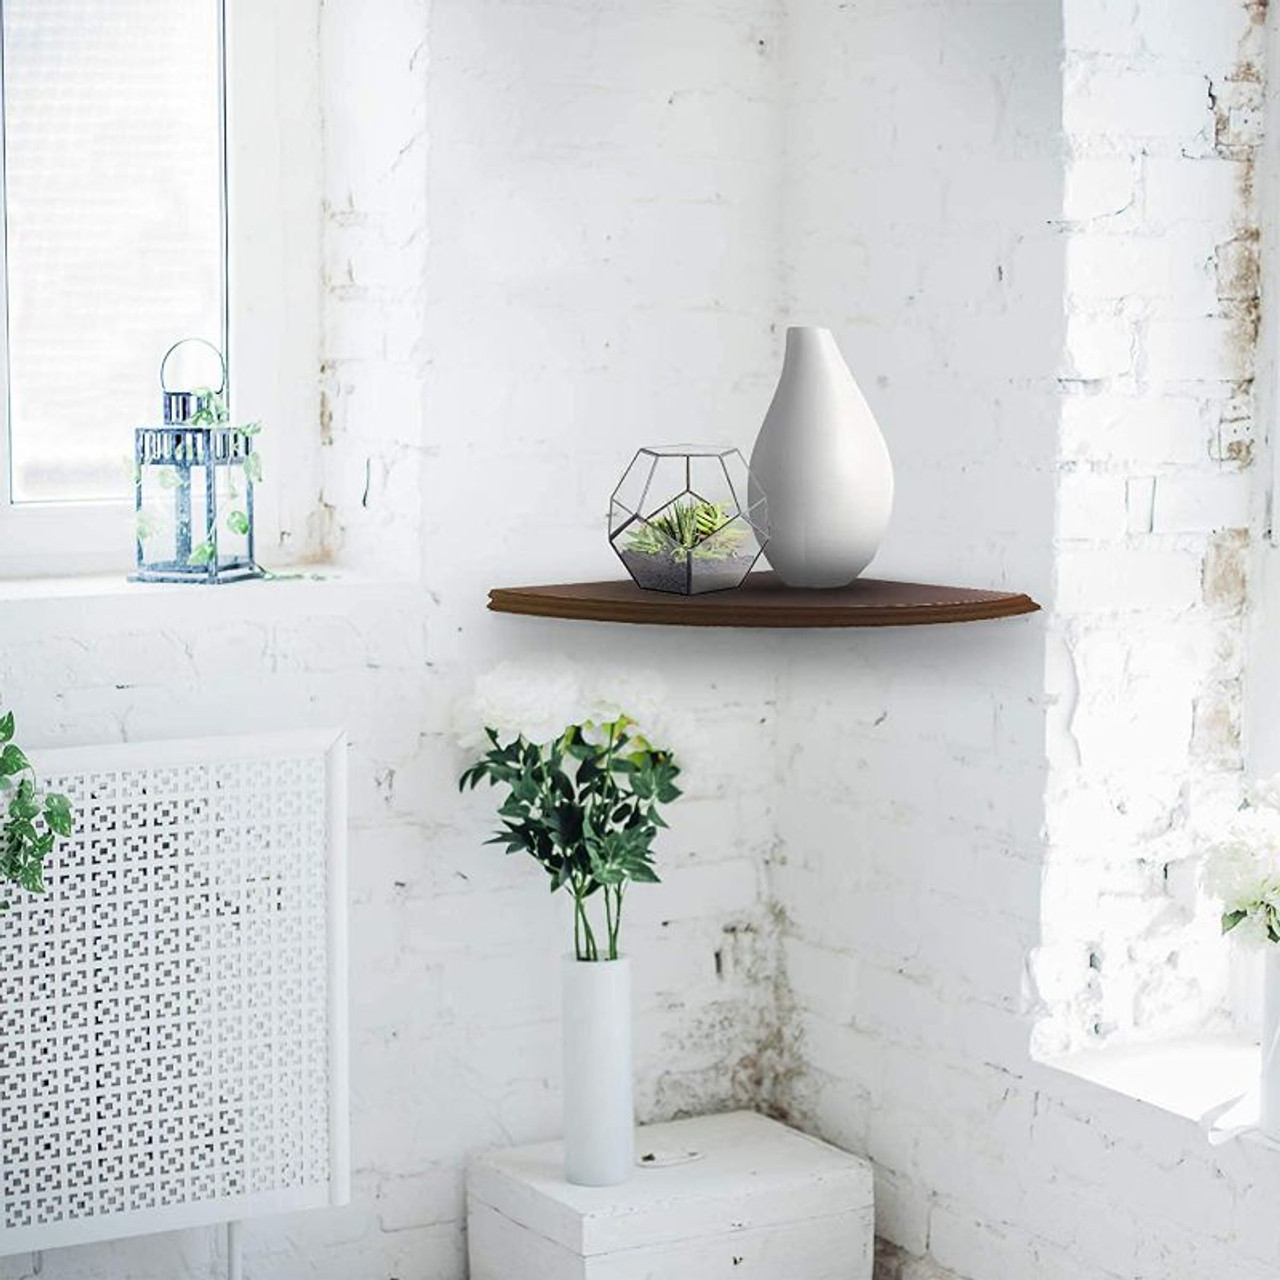 Halter Semi Circle Ledge Decorative Floating Wood Wall Shelves - Brown or White